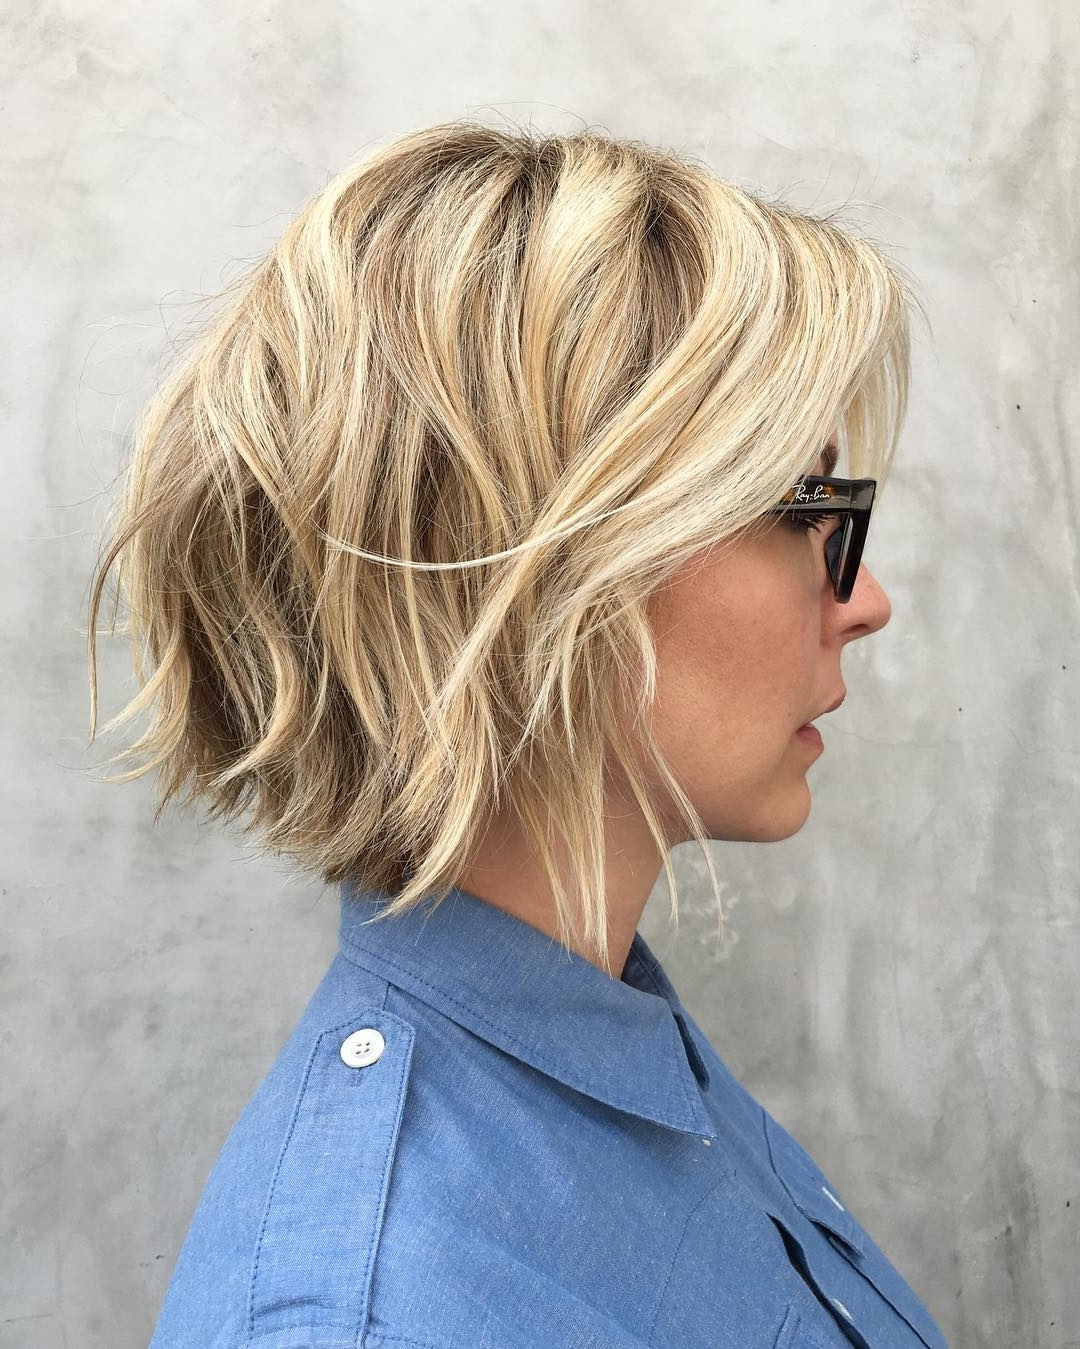 30 Trendiest Shaggy Bob Haircuts Of The Season Inside Recent Layered Shaggy Bob Hairstyles (View 2 of 15)